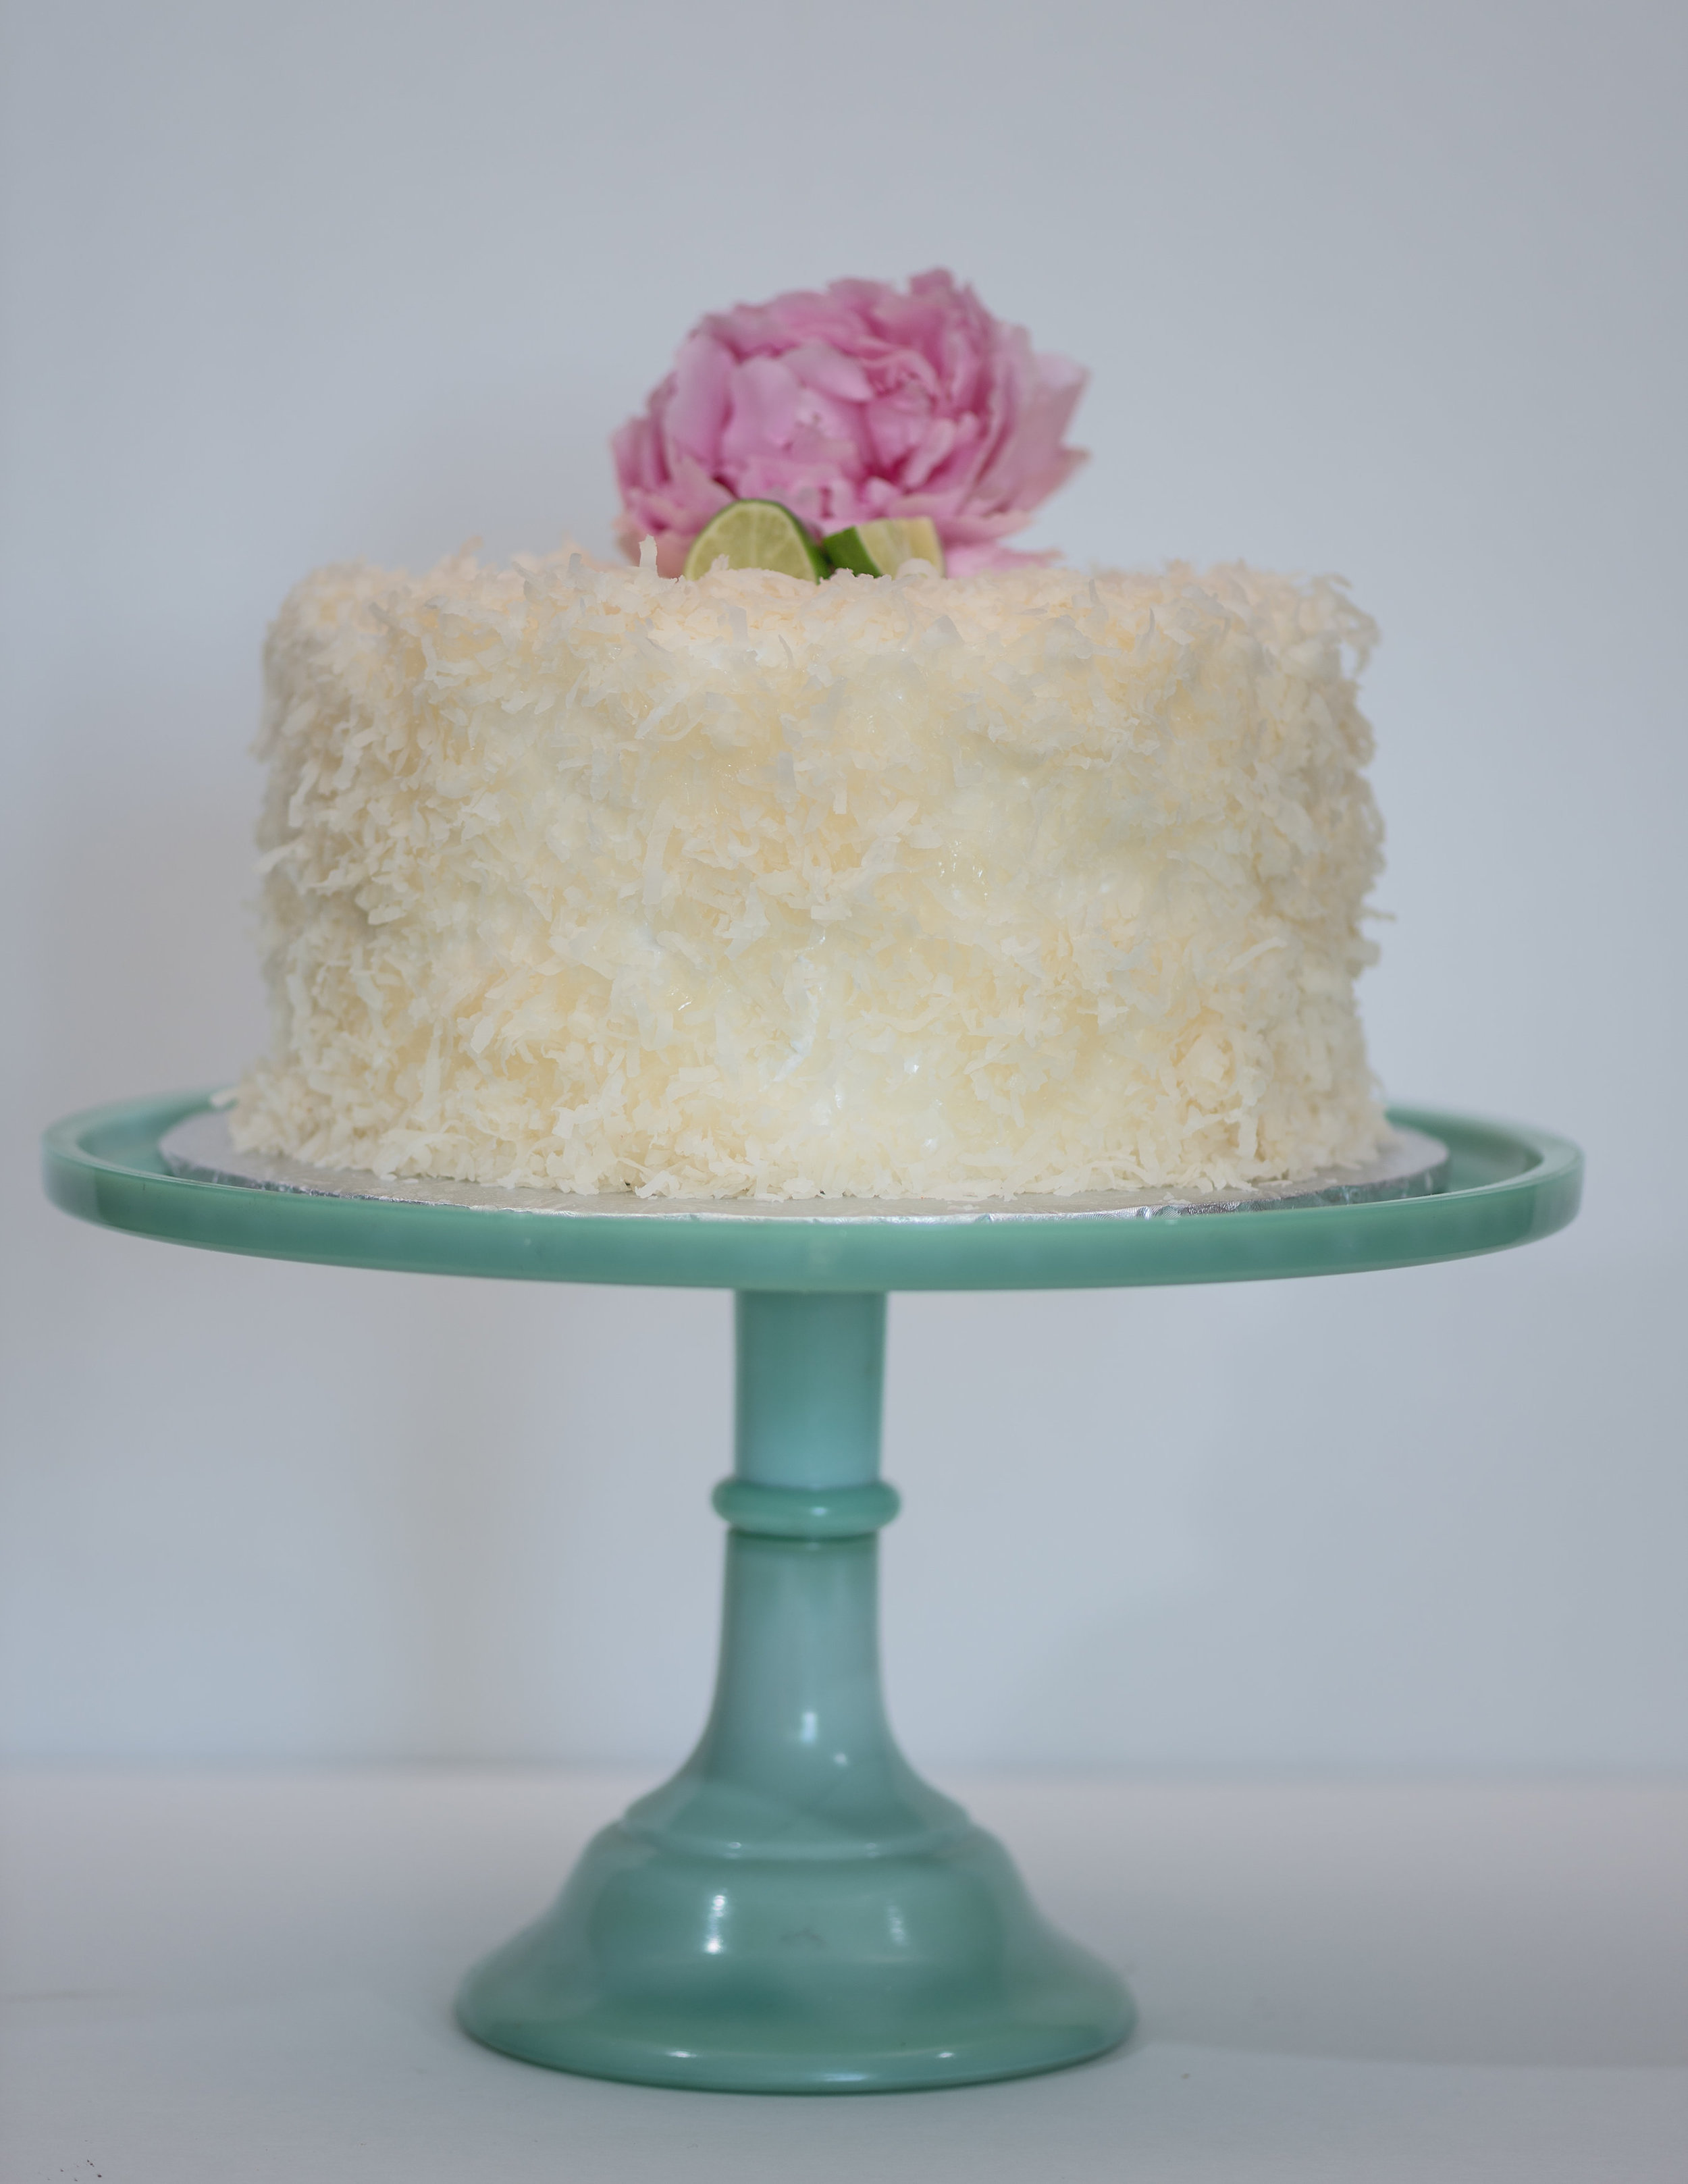 Key lime Coconut cake.Fresh flowers not included